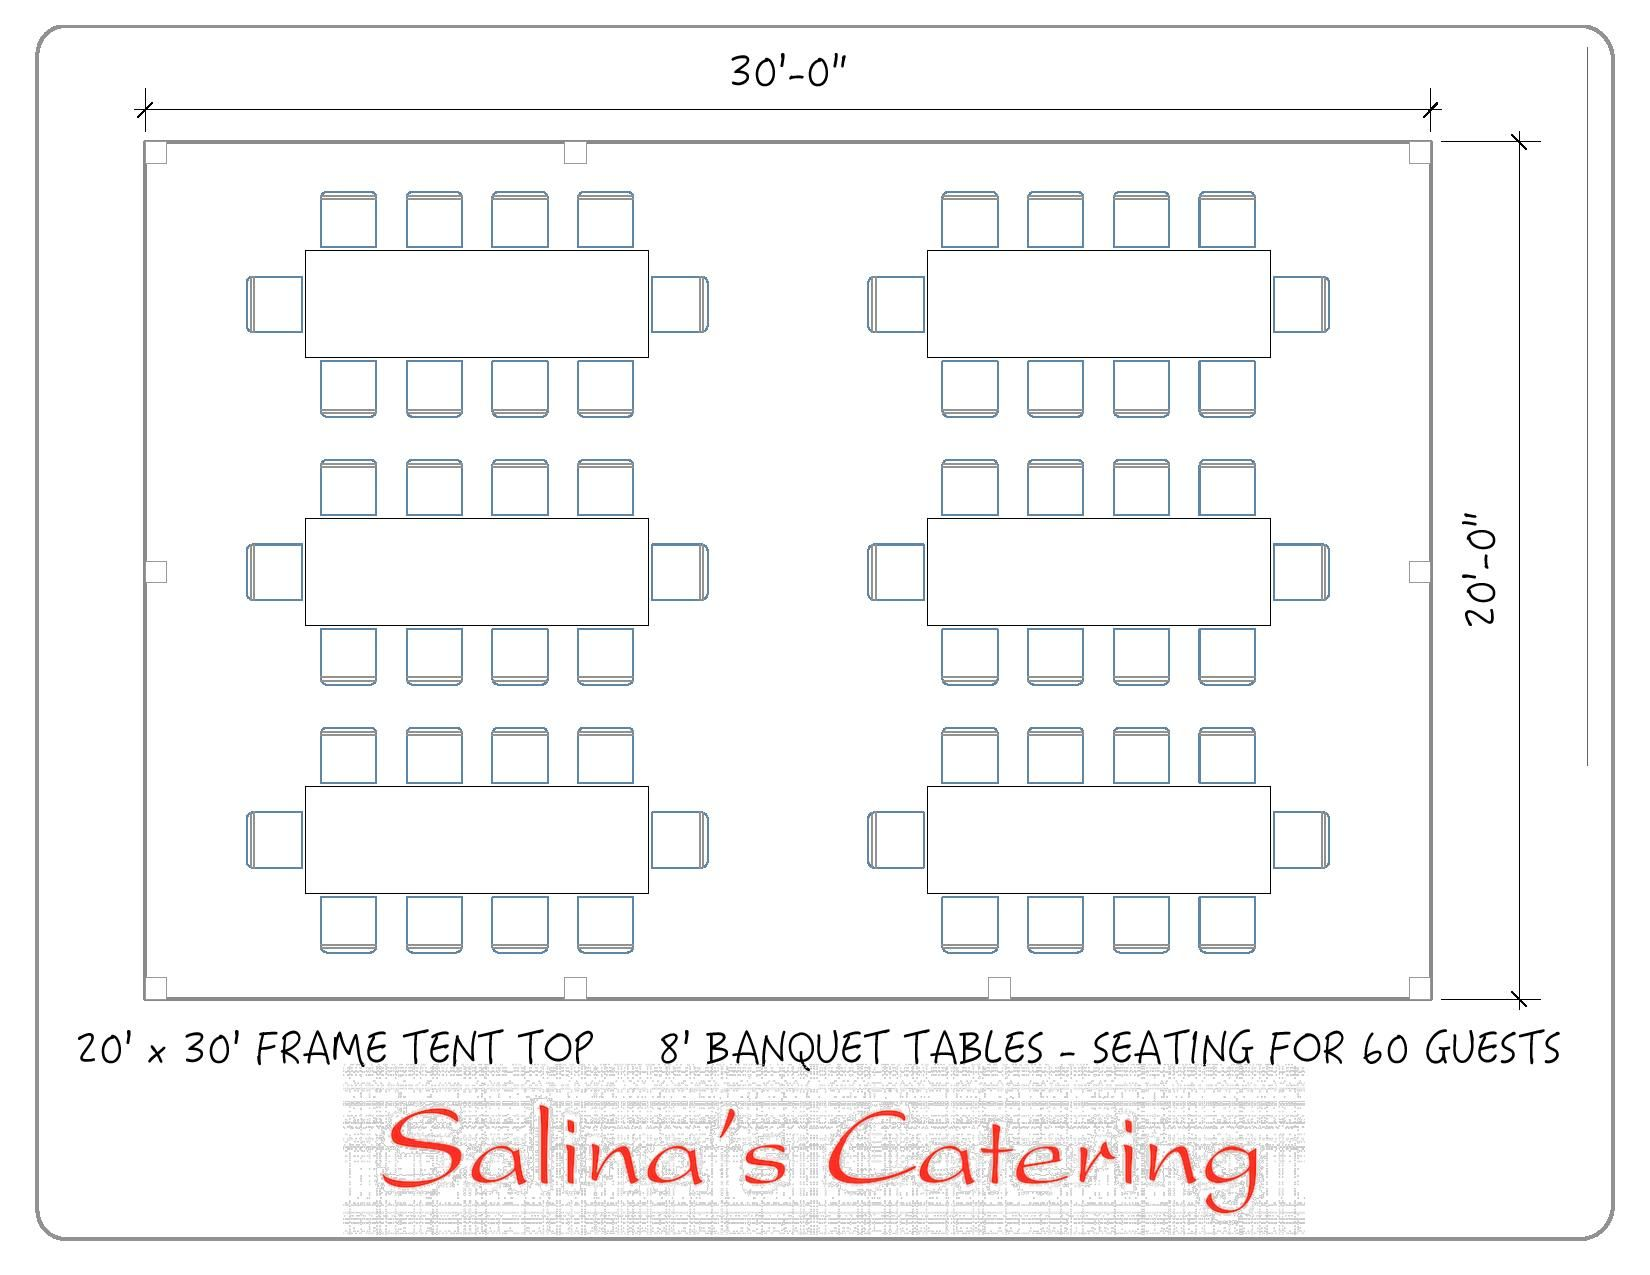 Table Seating For 20: Here Is A Top View Of A Basic Tent Layout Of A 20X30 Tent